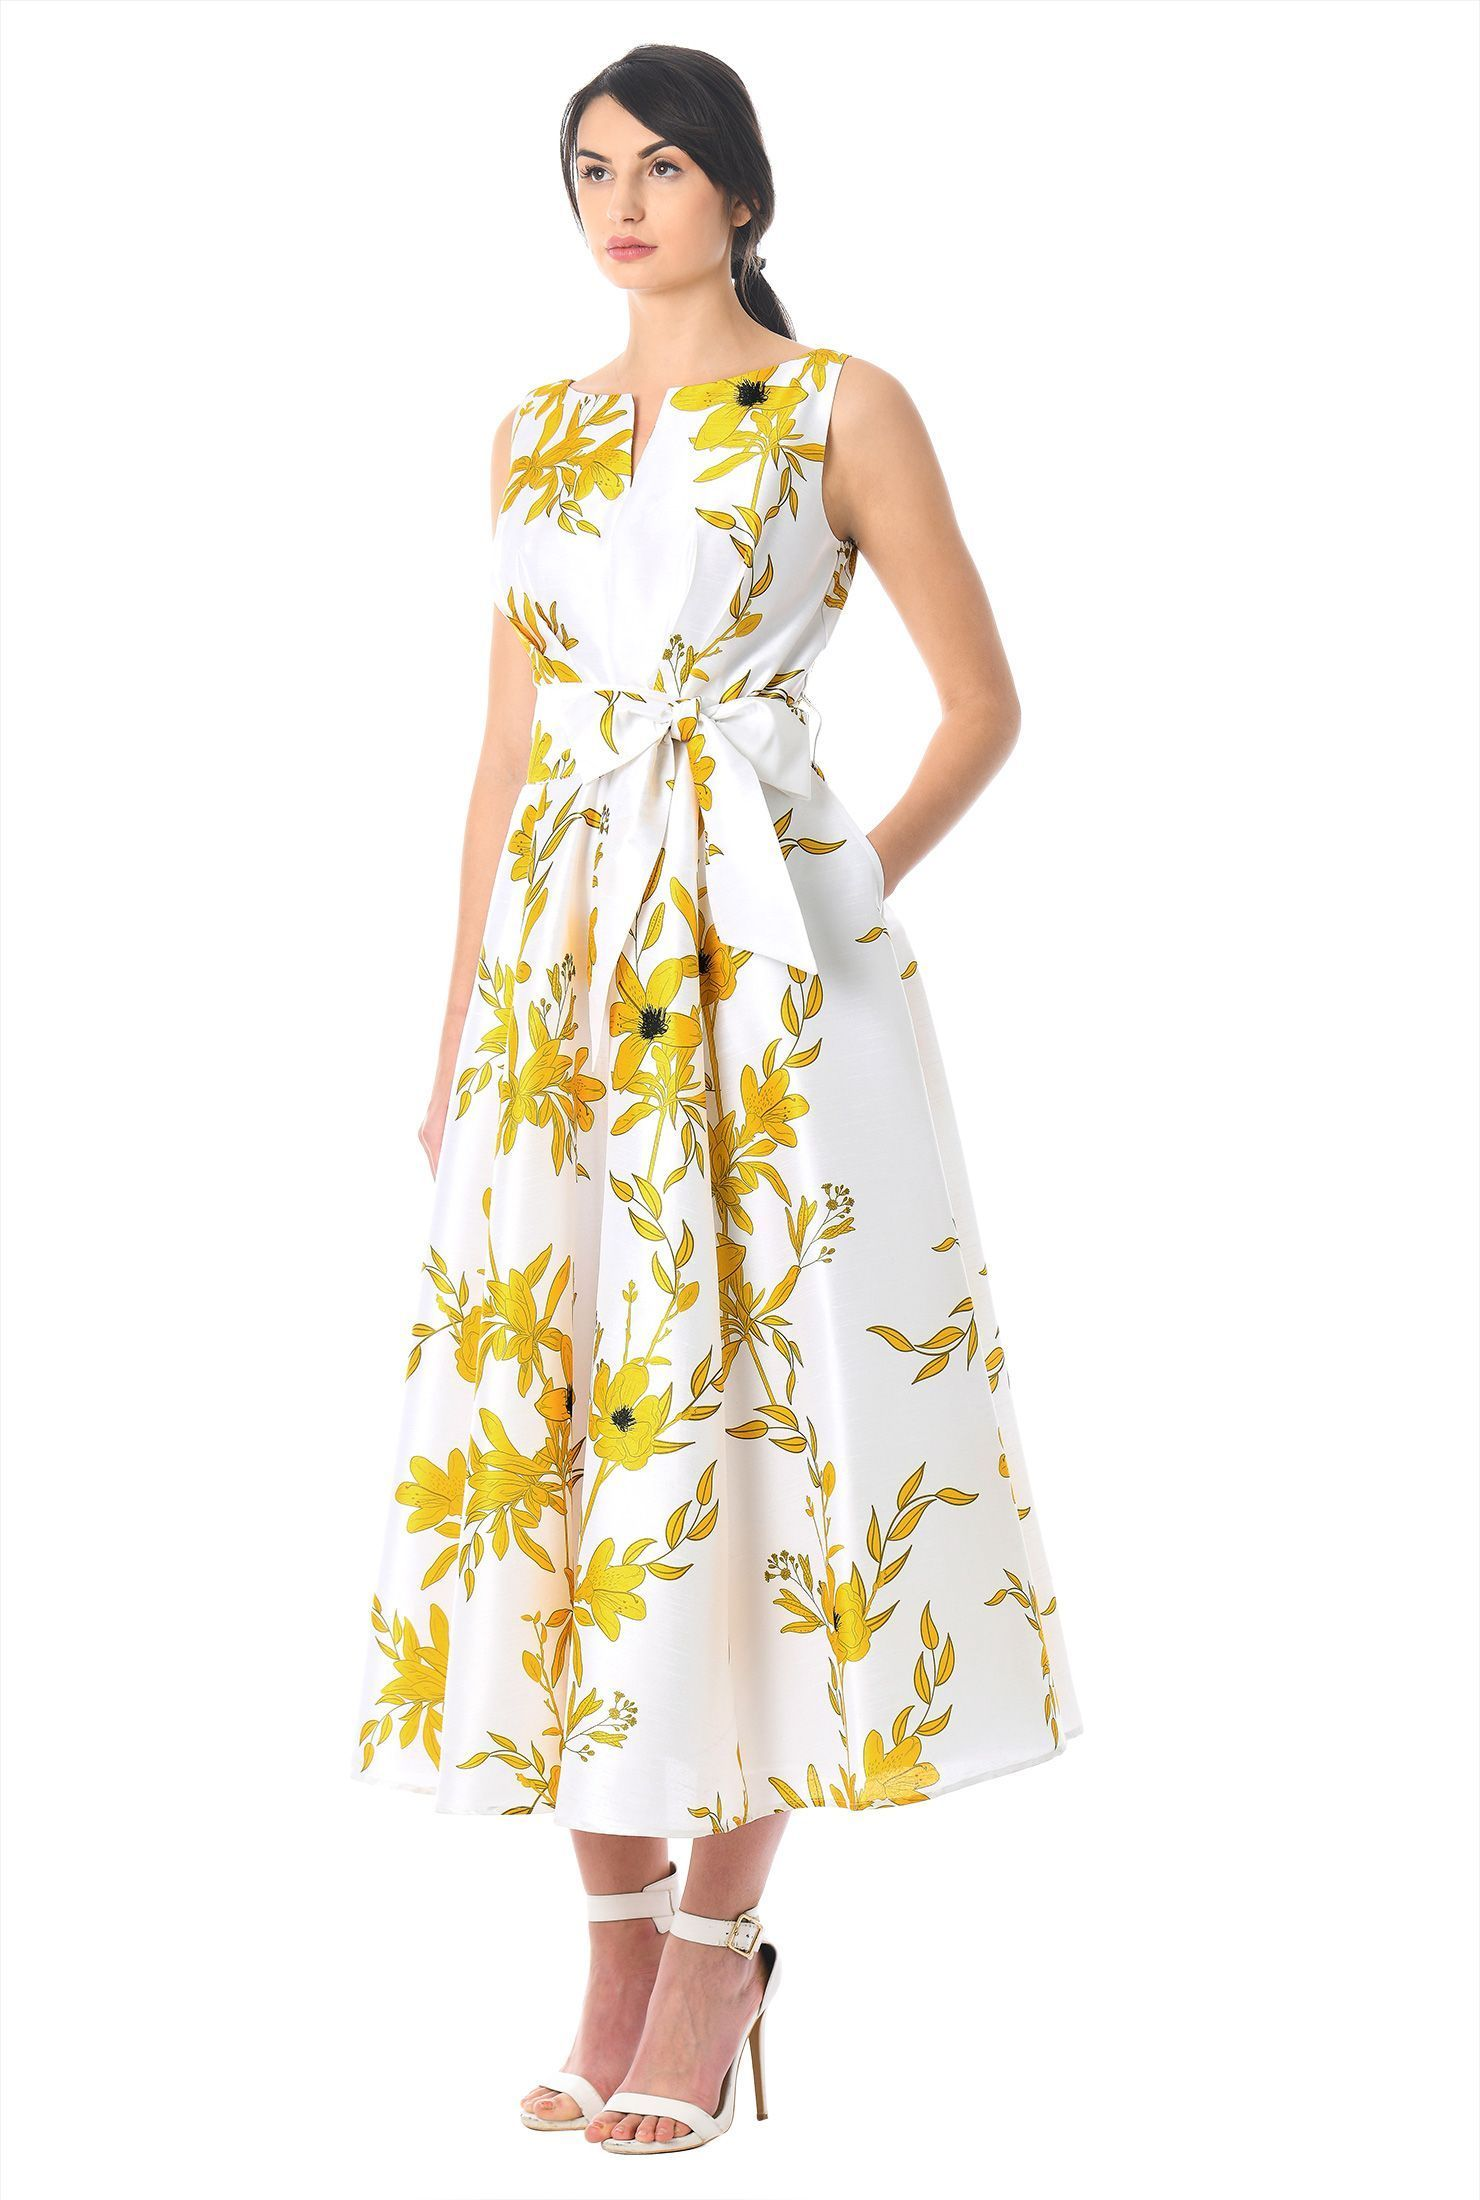 Yellow dress wedding guest  Wedding Guest dress weddingdress  Apparel  Pinterest  Wedding